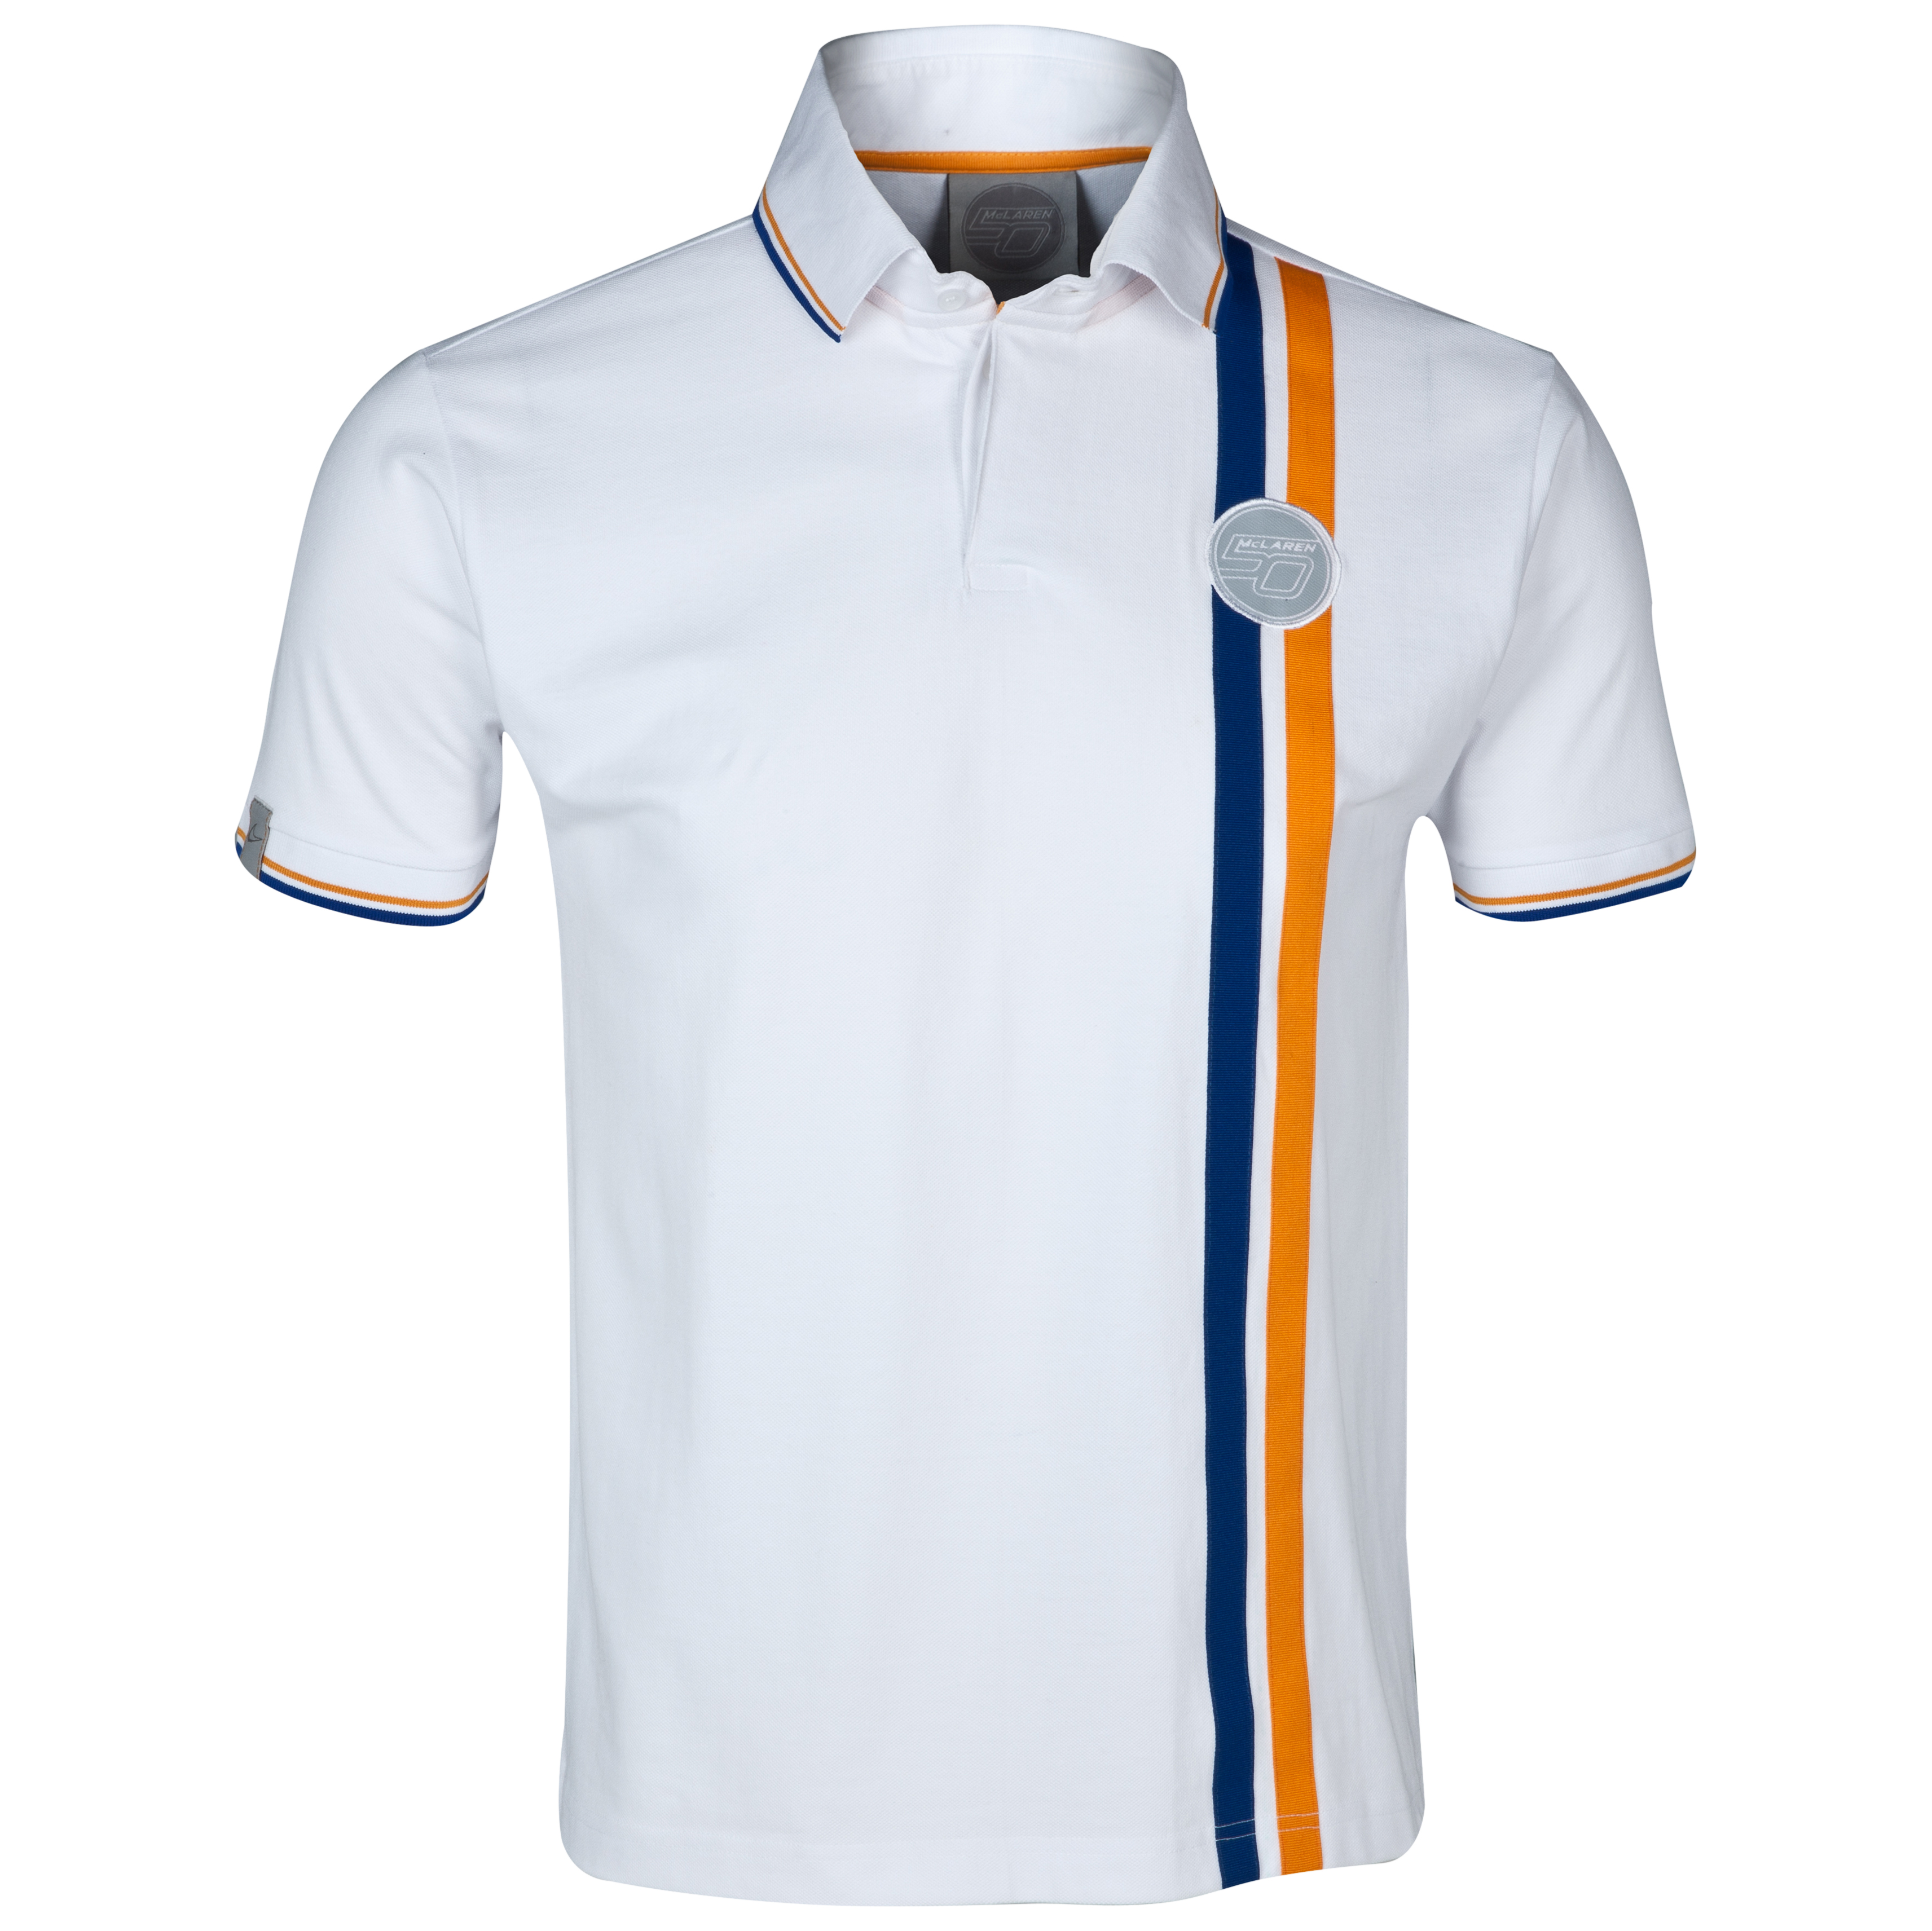 Team McLaren 50th Anniversary Collection Polo